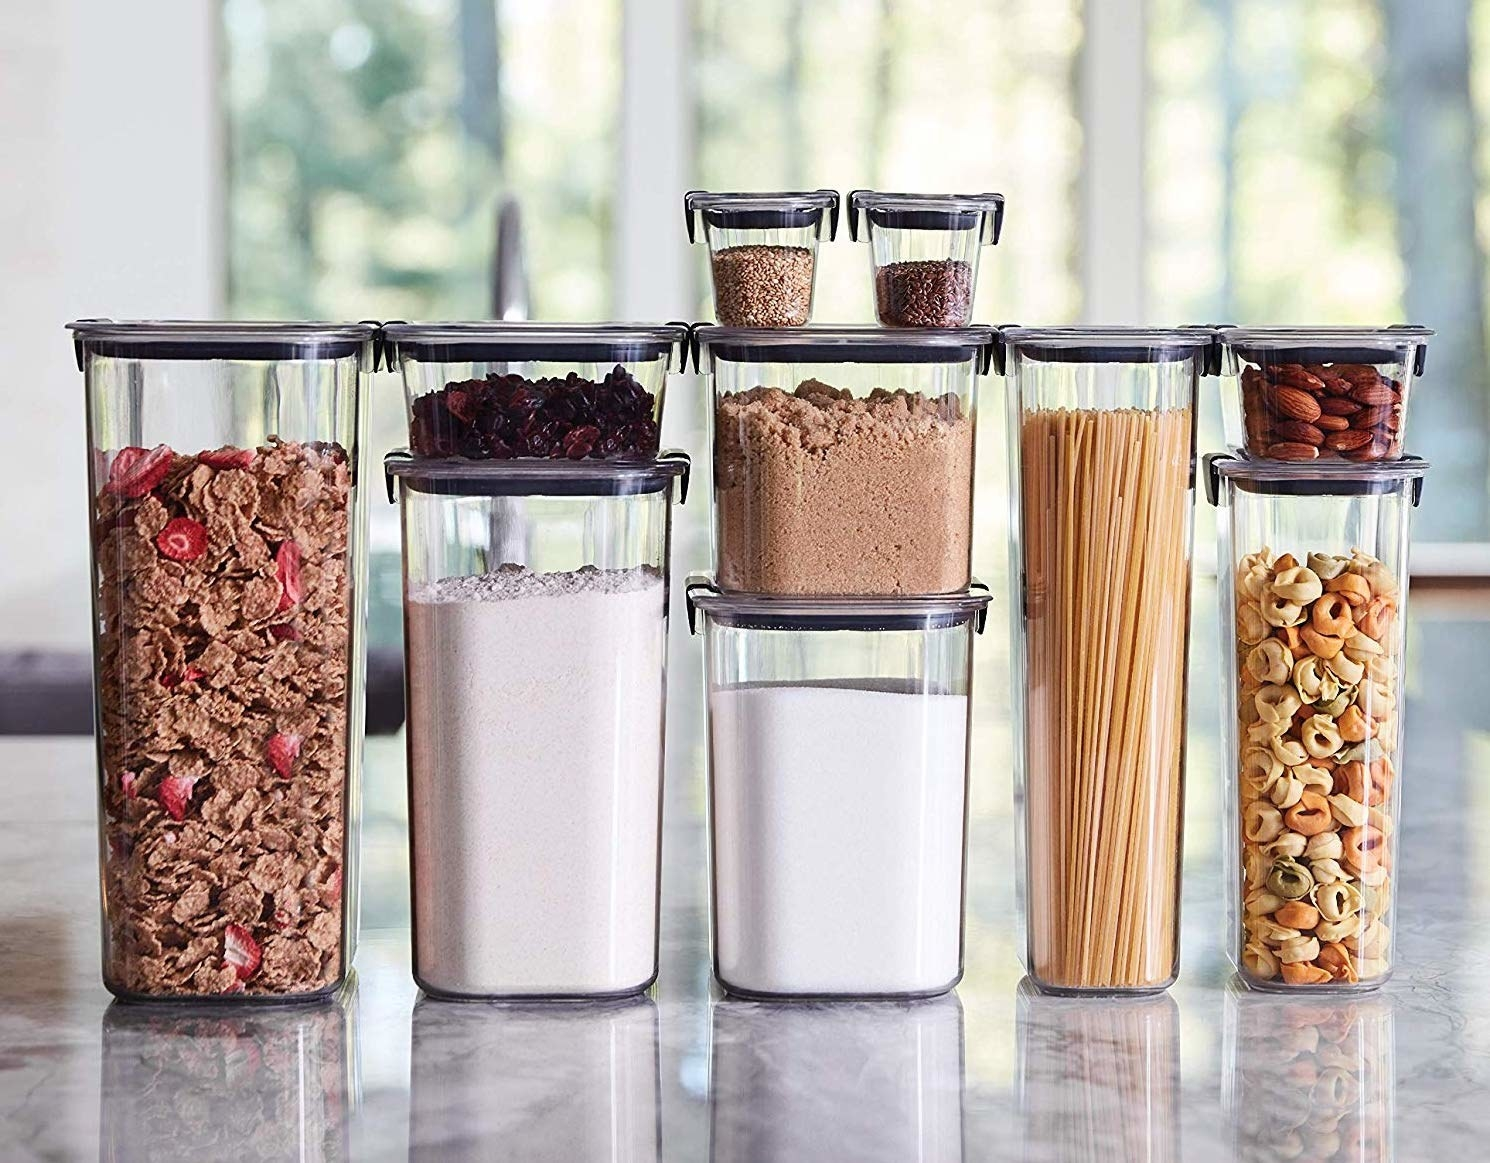 Several airtight storage containers filled with pantry staples